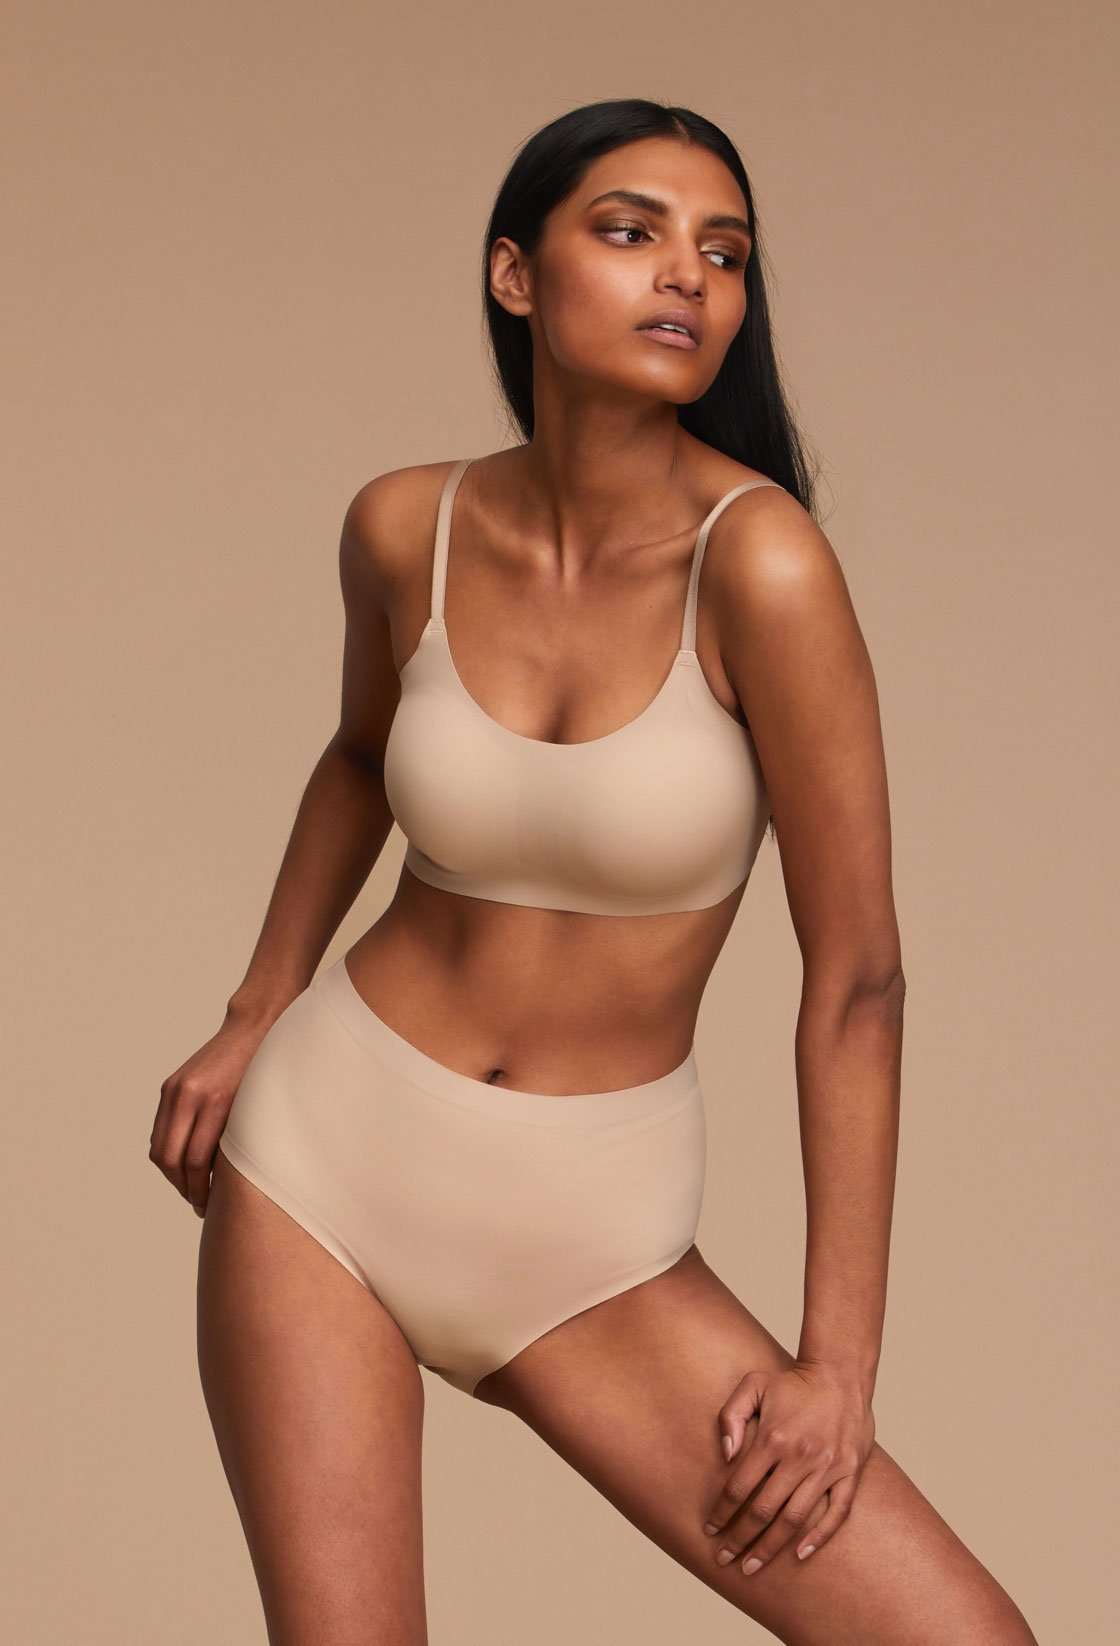 Woman Wearing EBY High Waisted Neutrals in Nude Missy Size Front View